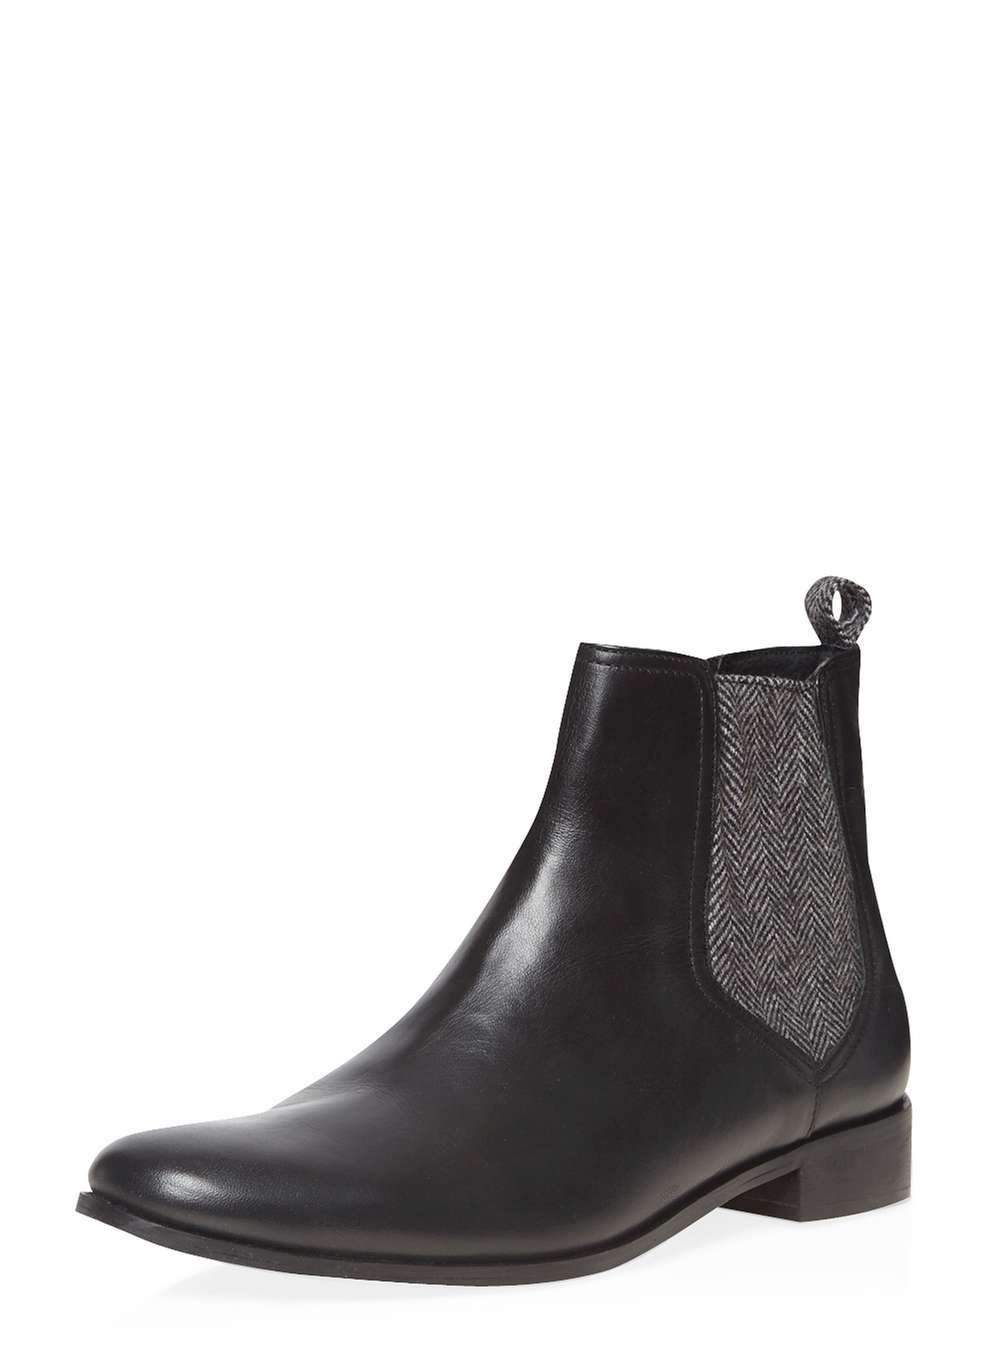 Womens **Ravel Black Ankle Boots Black - predominant colour: black; occasions: casual, work, creative work; material: leather; heel height: mid; heel: block; toe: round toe; boot length: ankle boot; style: standard; finish: plain; pattern: plain; season: a/w 2016